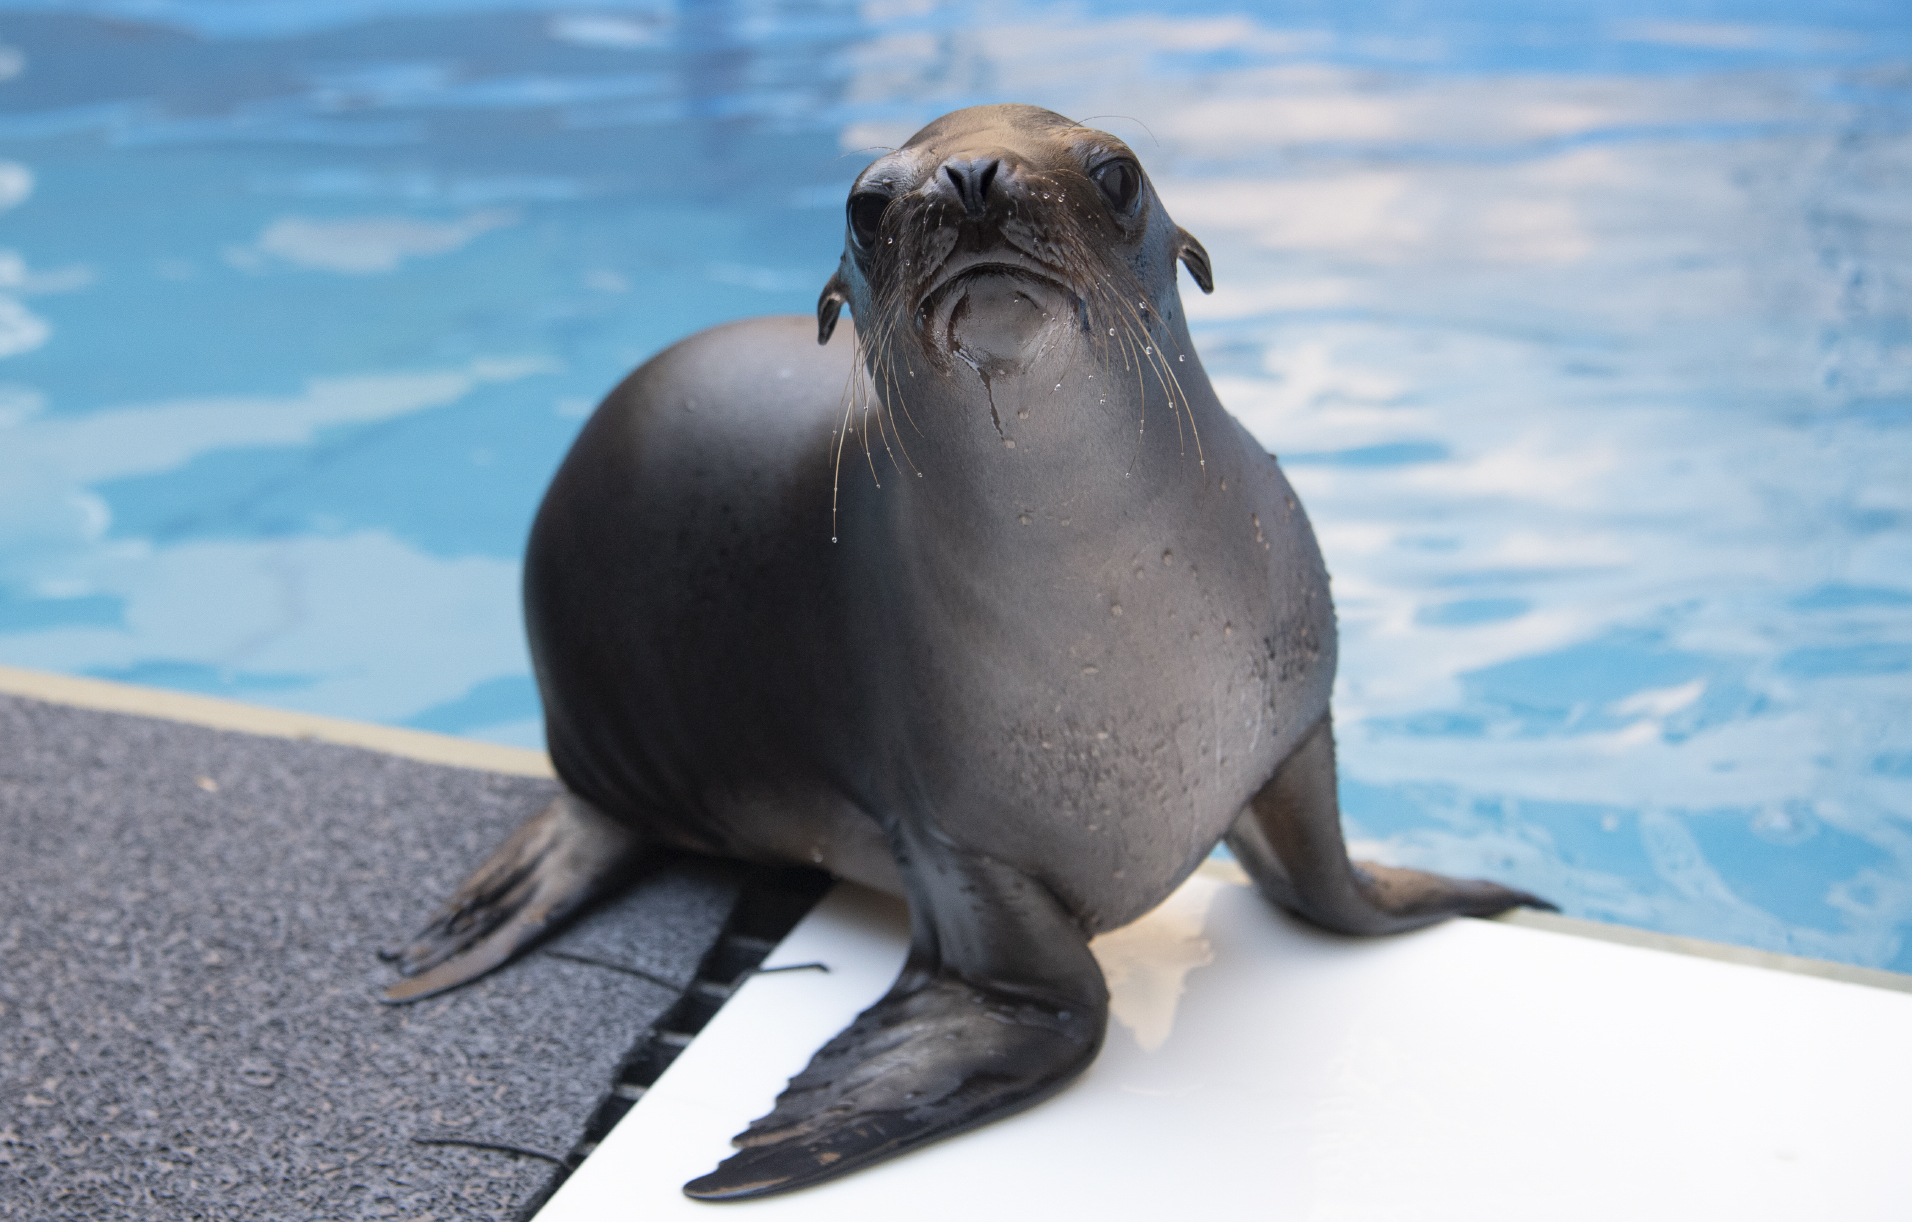 Hang out with the New York Aquarium's new sea lion pup (virtually, of course)